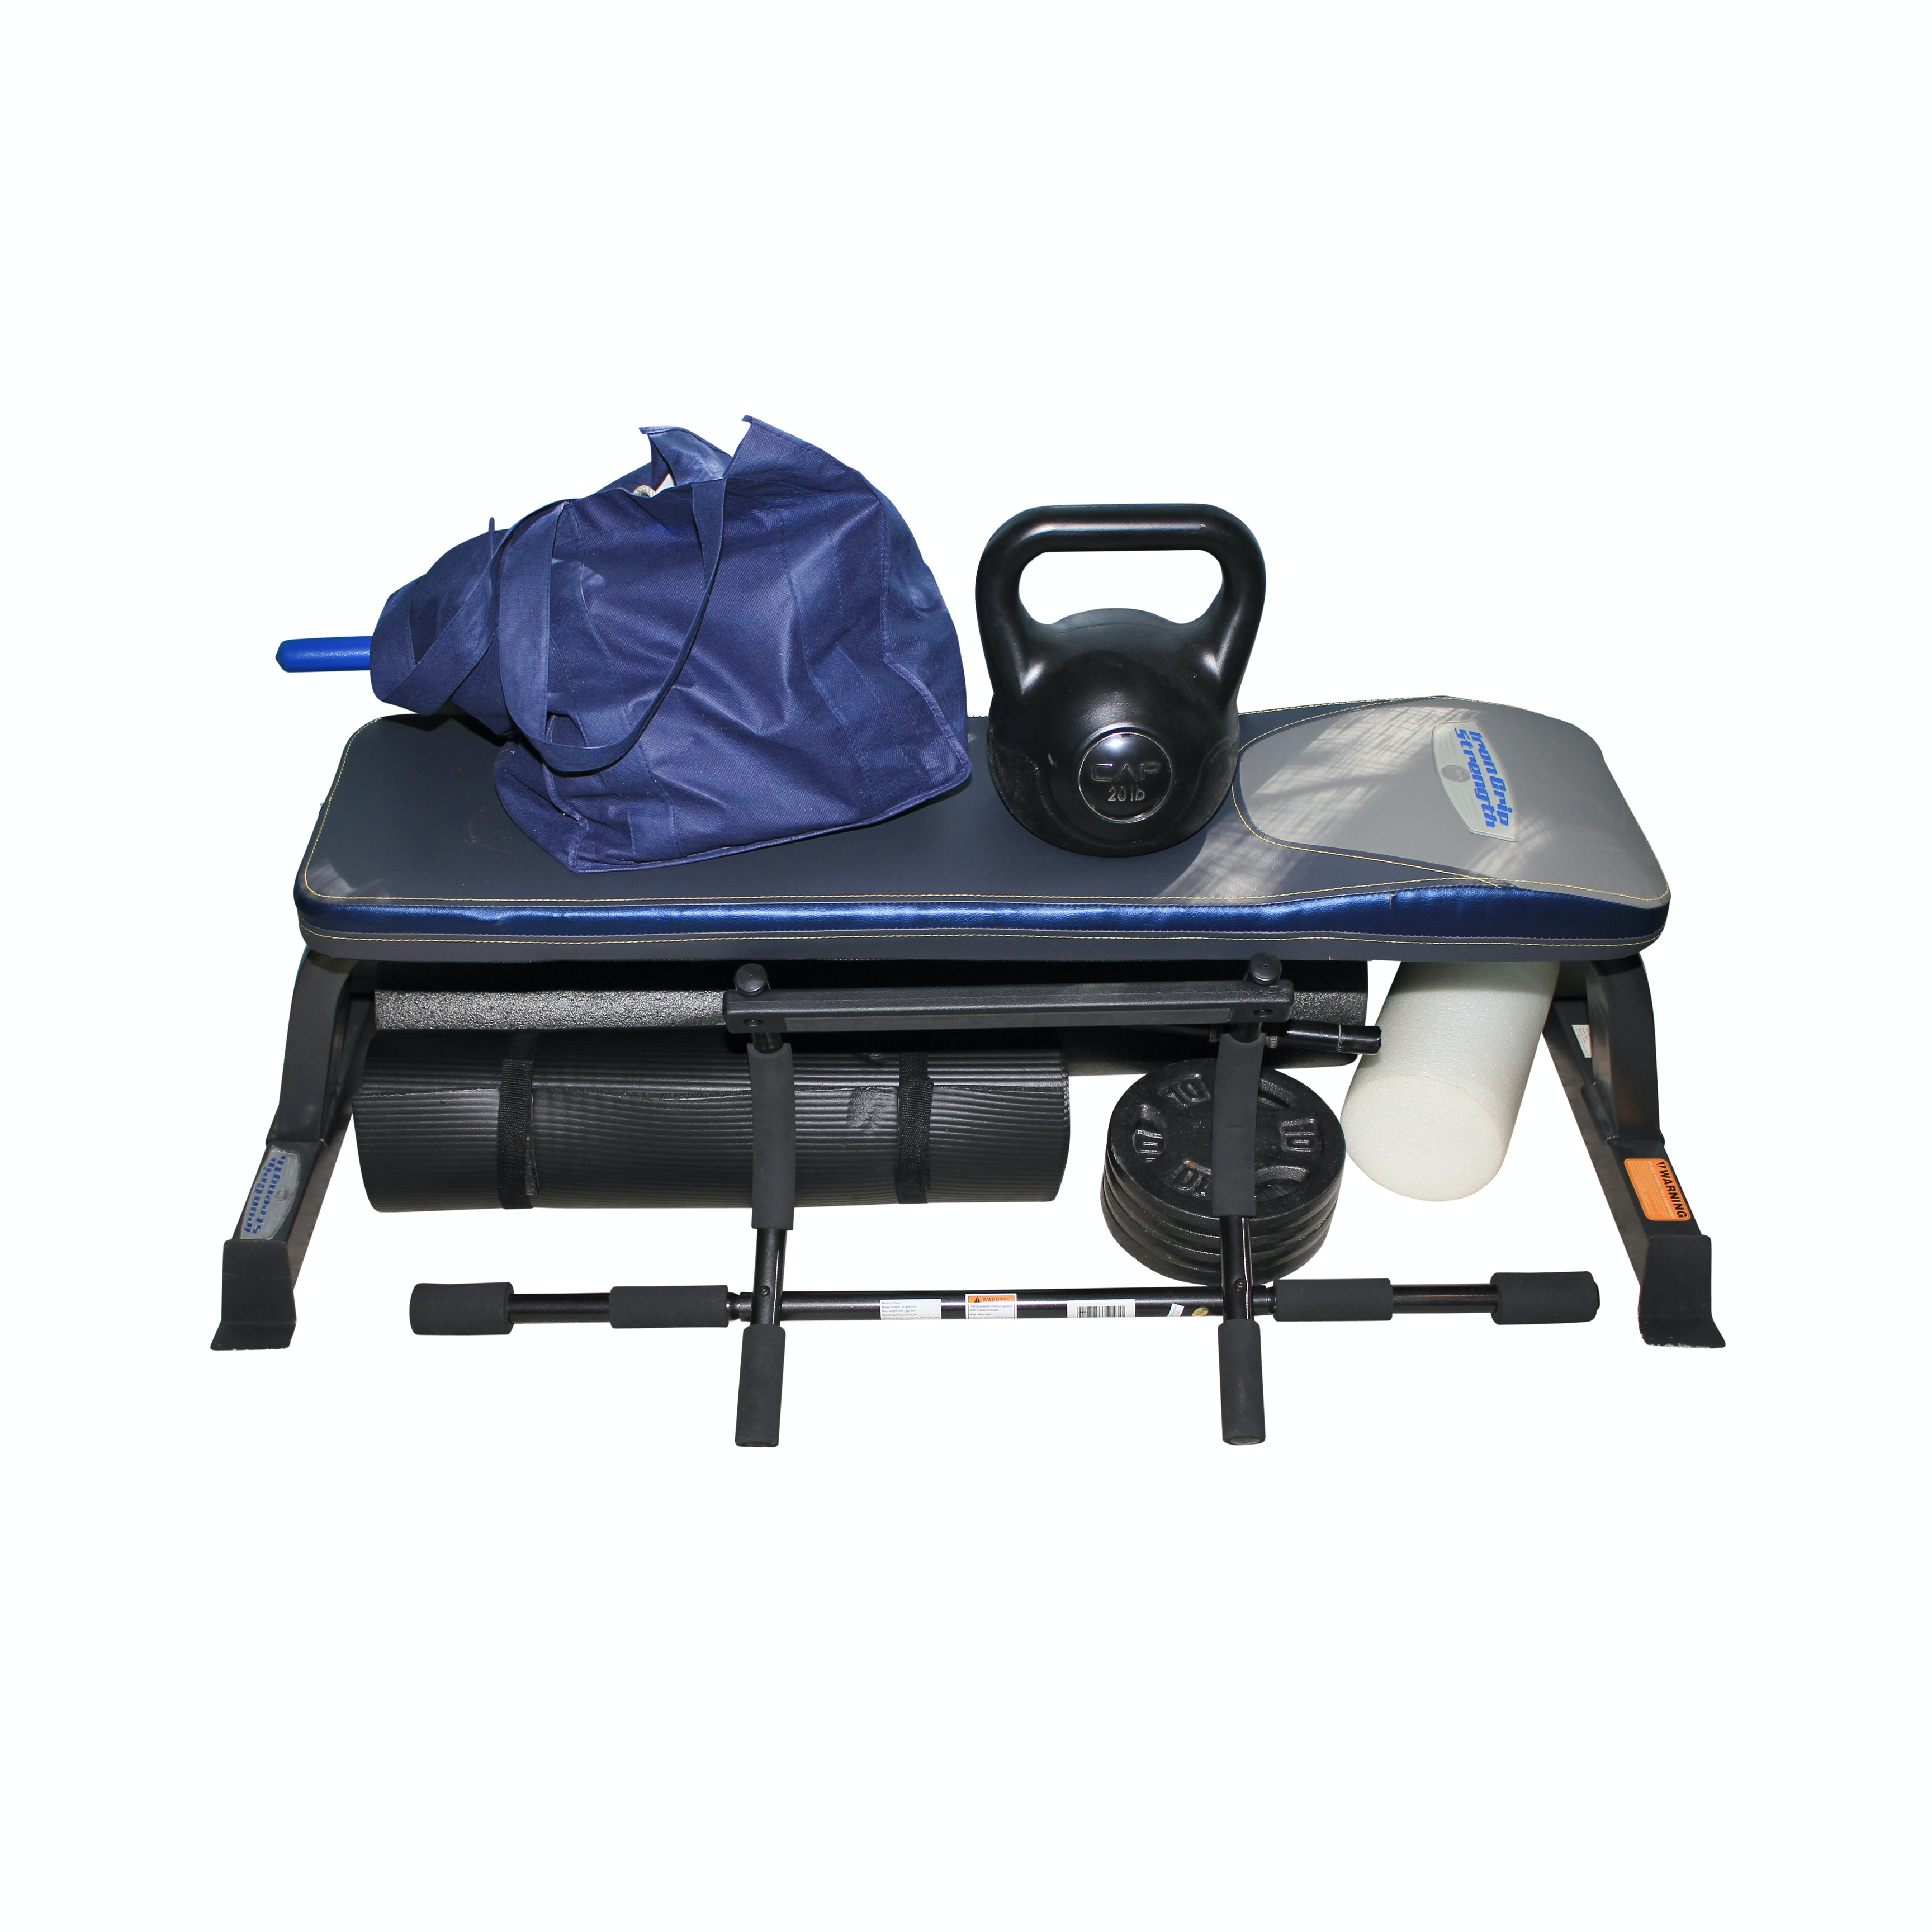 Iron Grip Strength Weight Bench and Other Fitness Gear